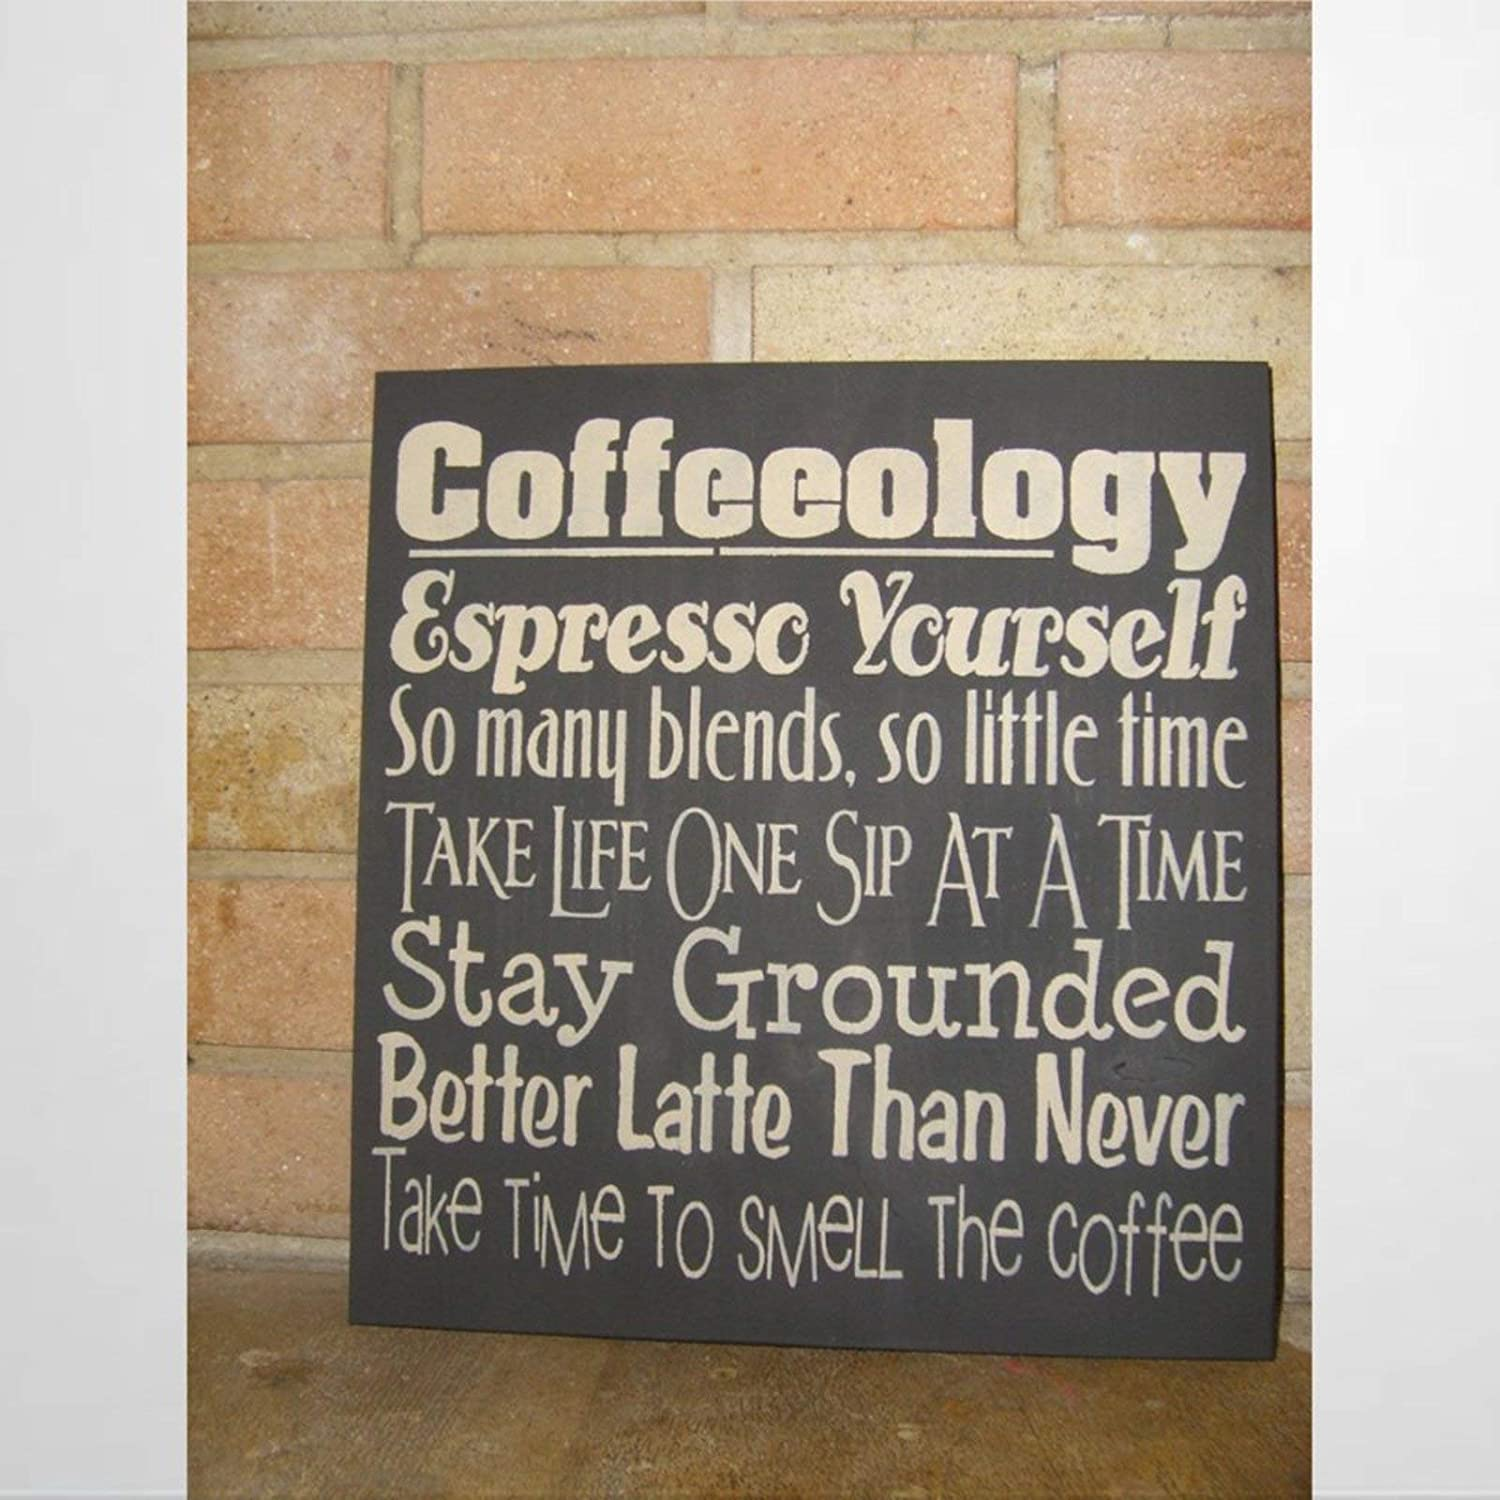 BYRON HOYLE Coffee Sign Coffeology Espresso Yourself Kitchen Sign Wood Plaque Wall Art Wall Hanger Home Decor